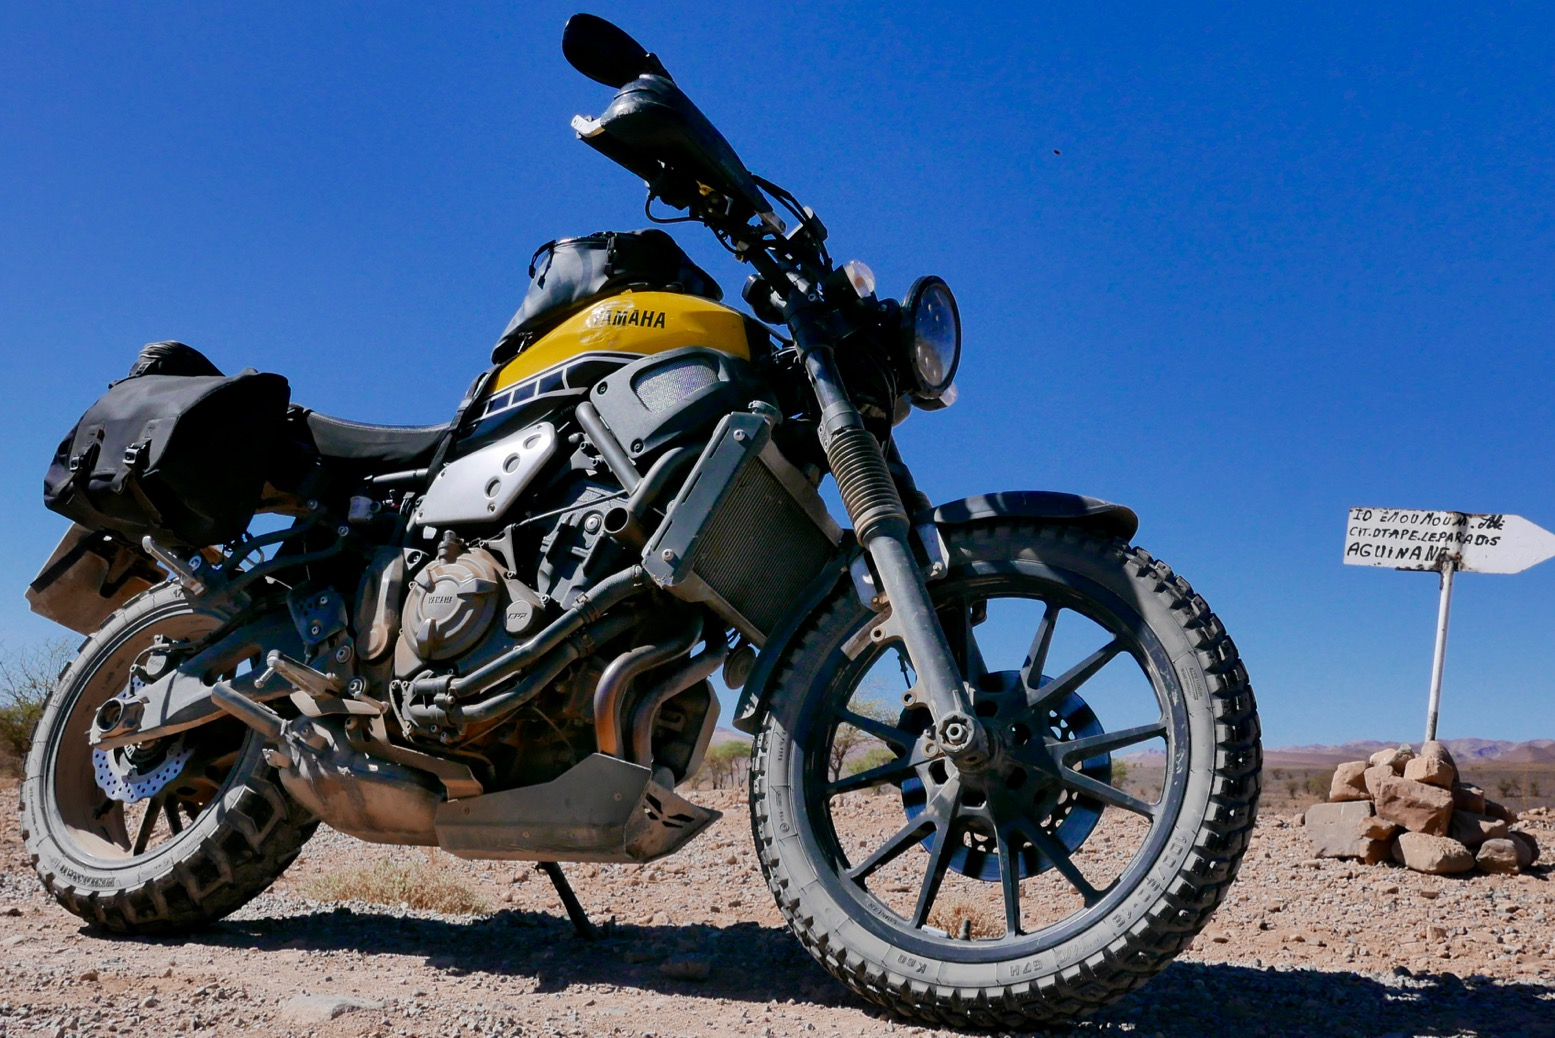 A Few Shots Of My XSR700 Scrambler After Month In Morocco Leading Three Tours Im Impressed With How Its Shrugged It All Off Just Like Old Teneres